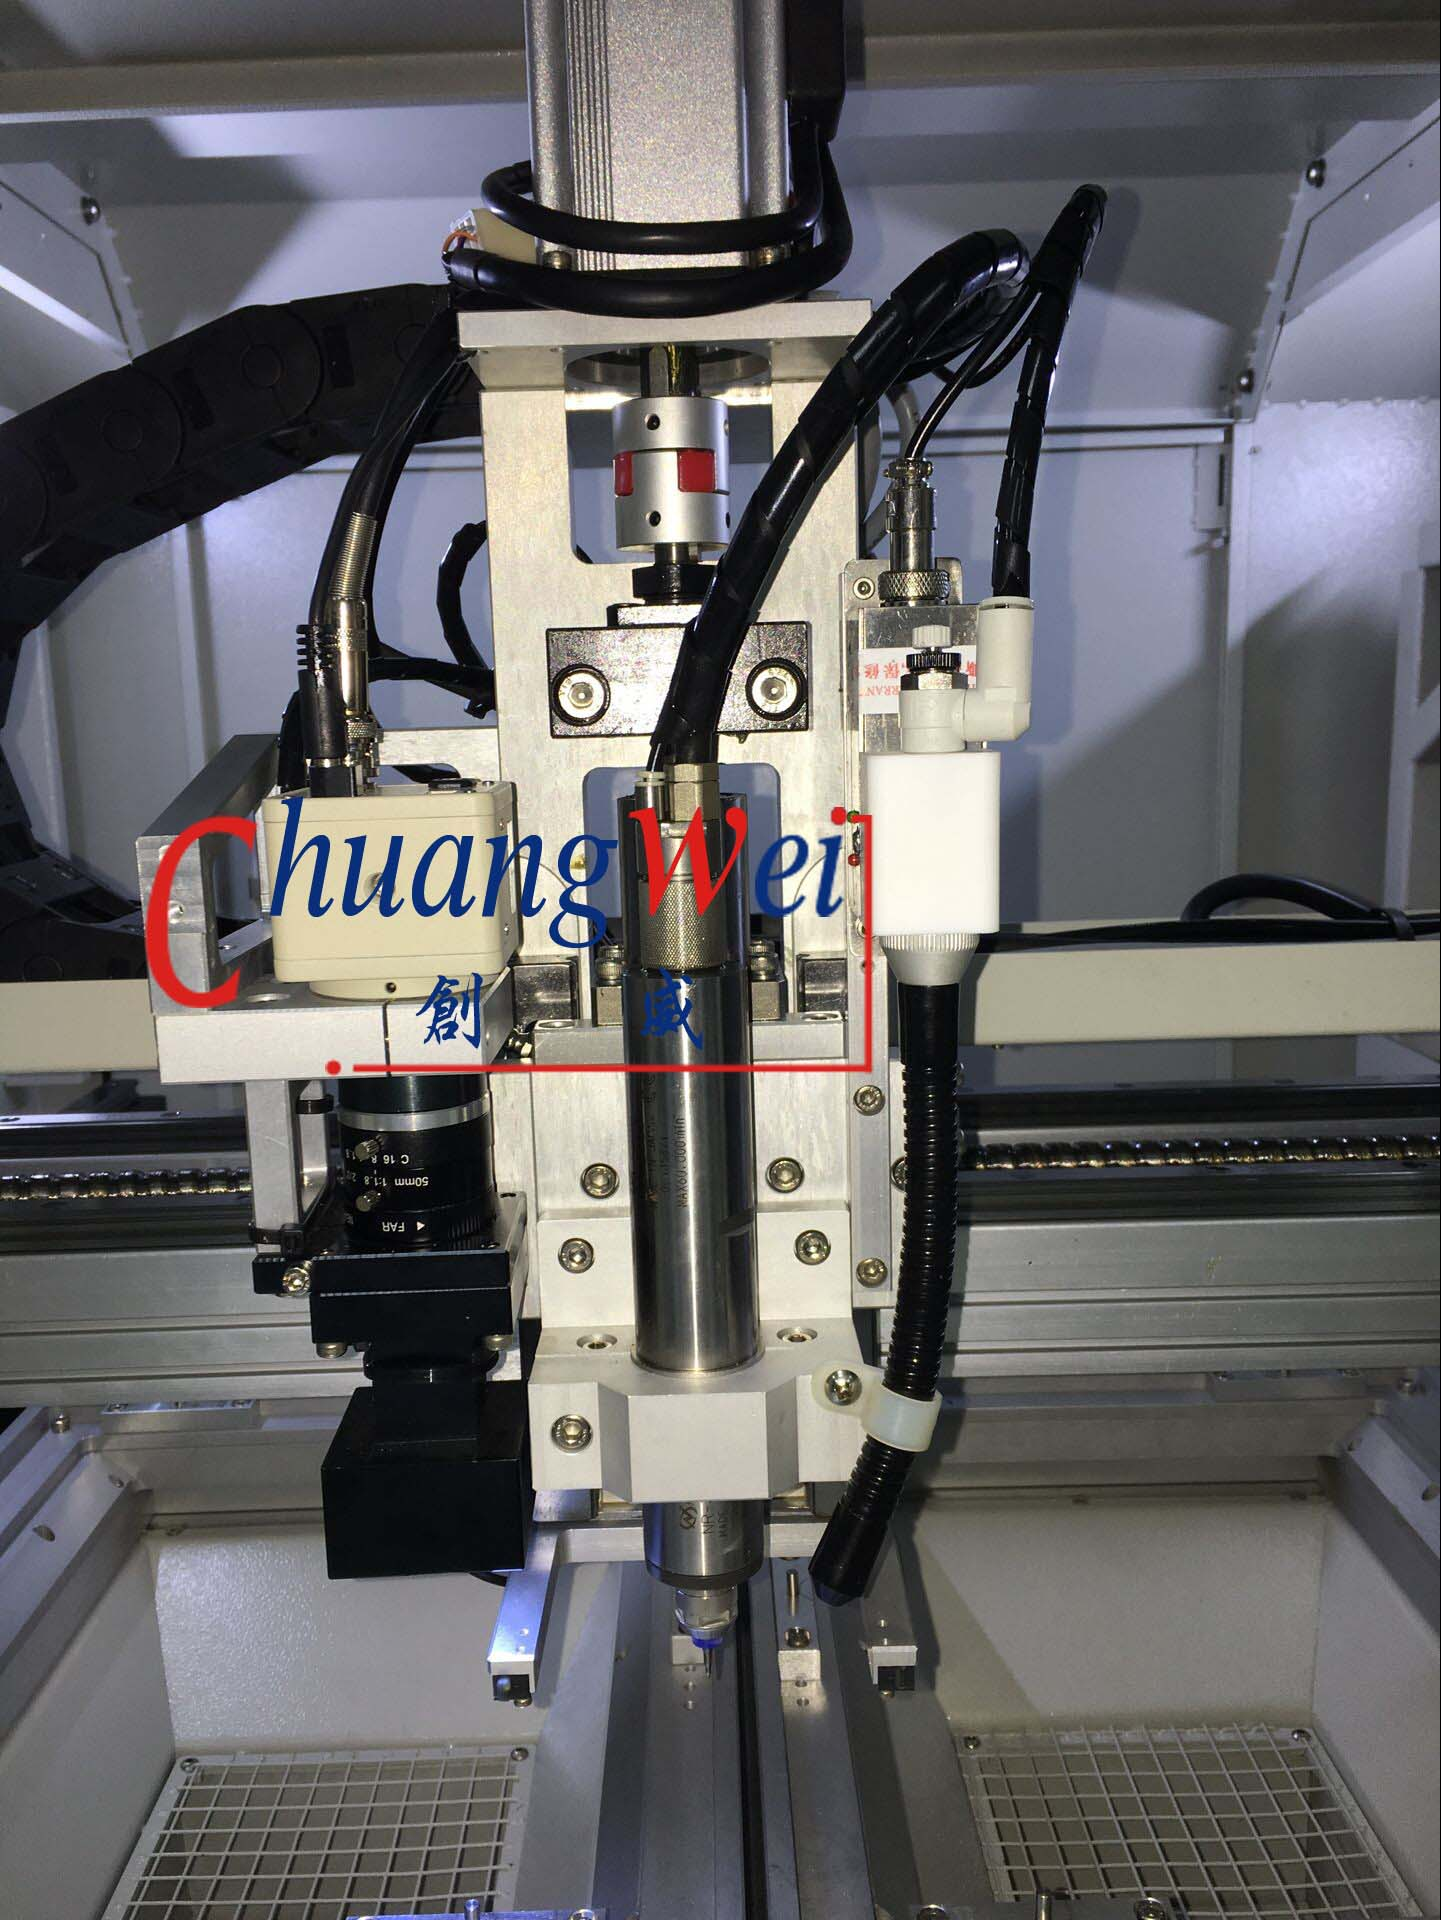 Pcb Router Cutting Circuit Boards Images Of Cw F01 S